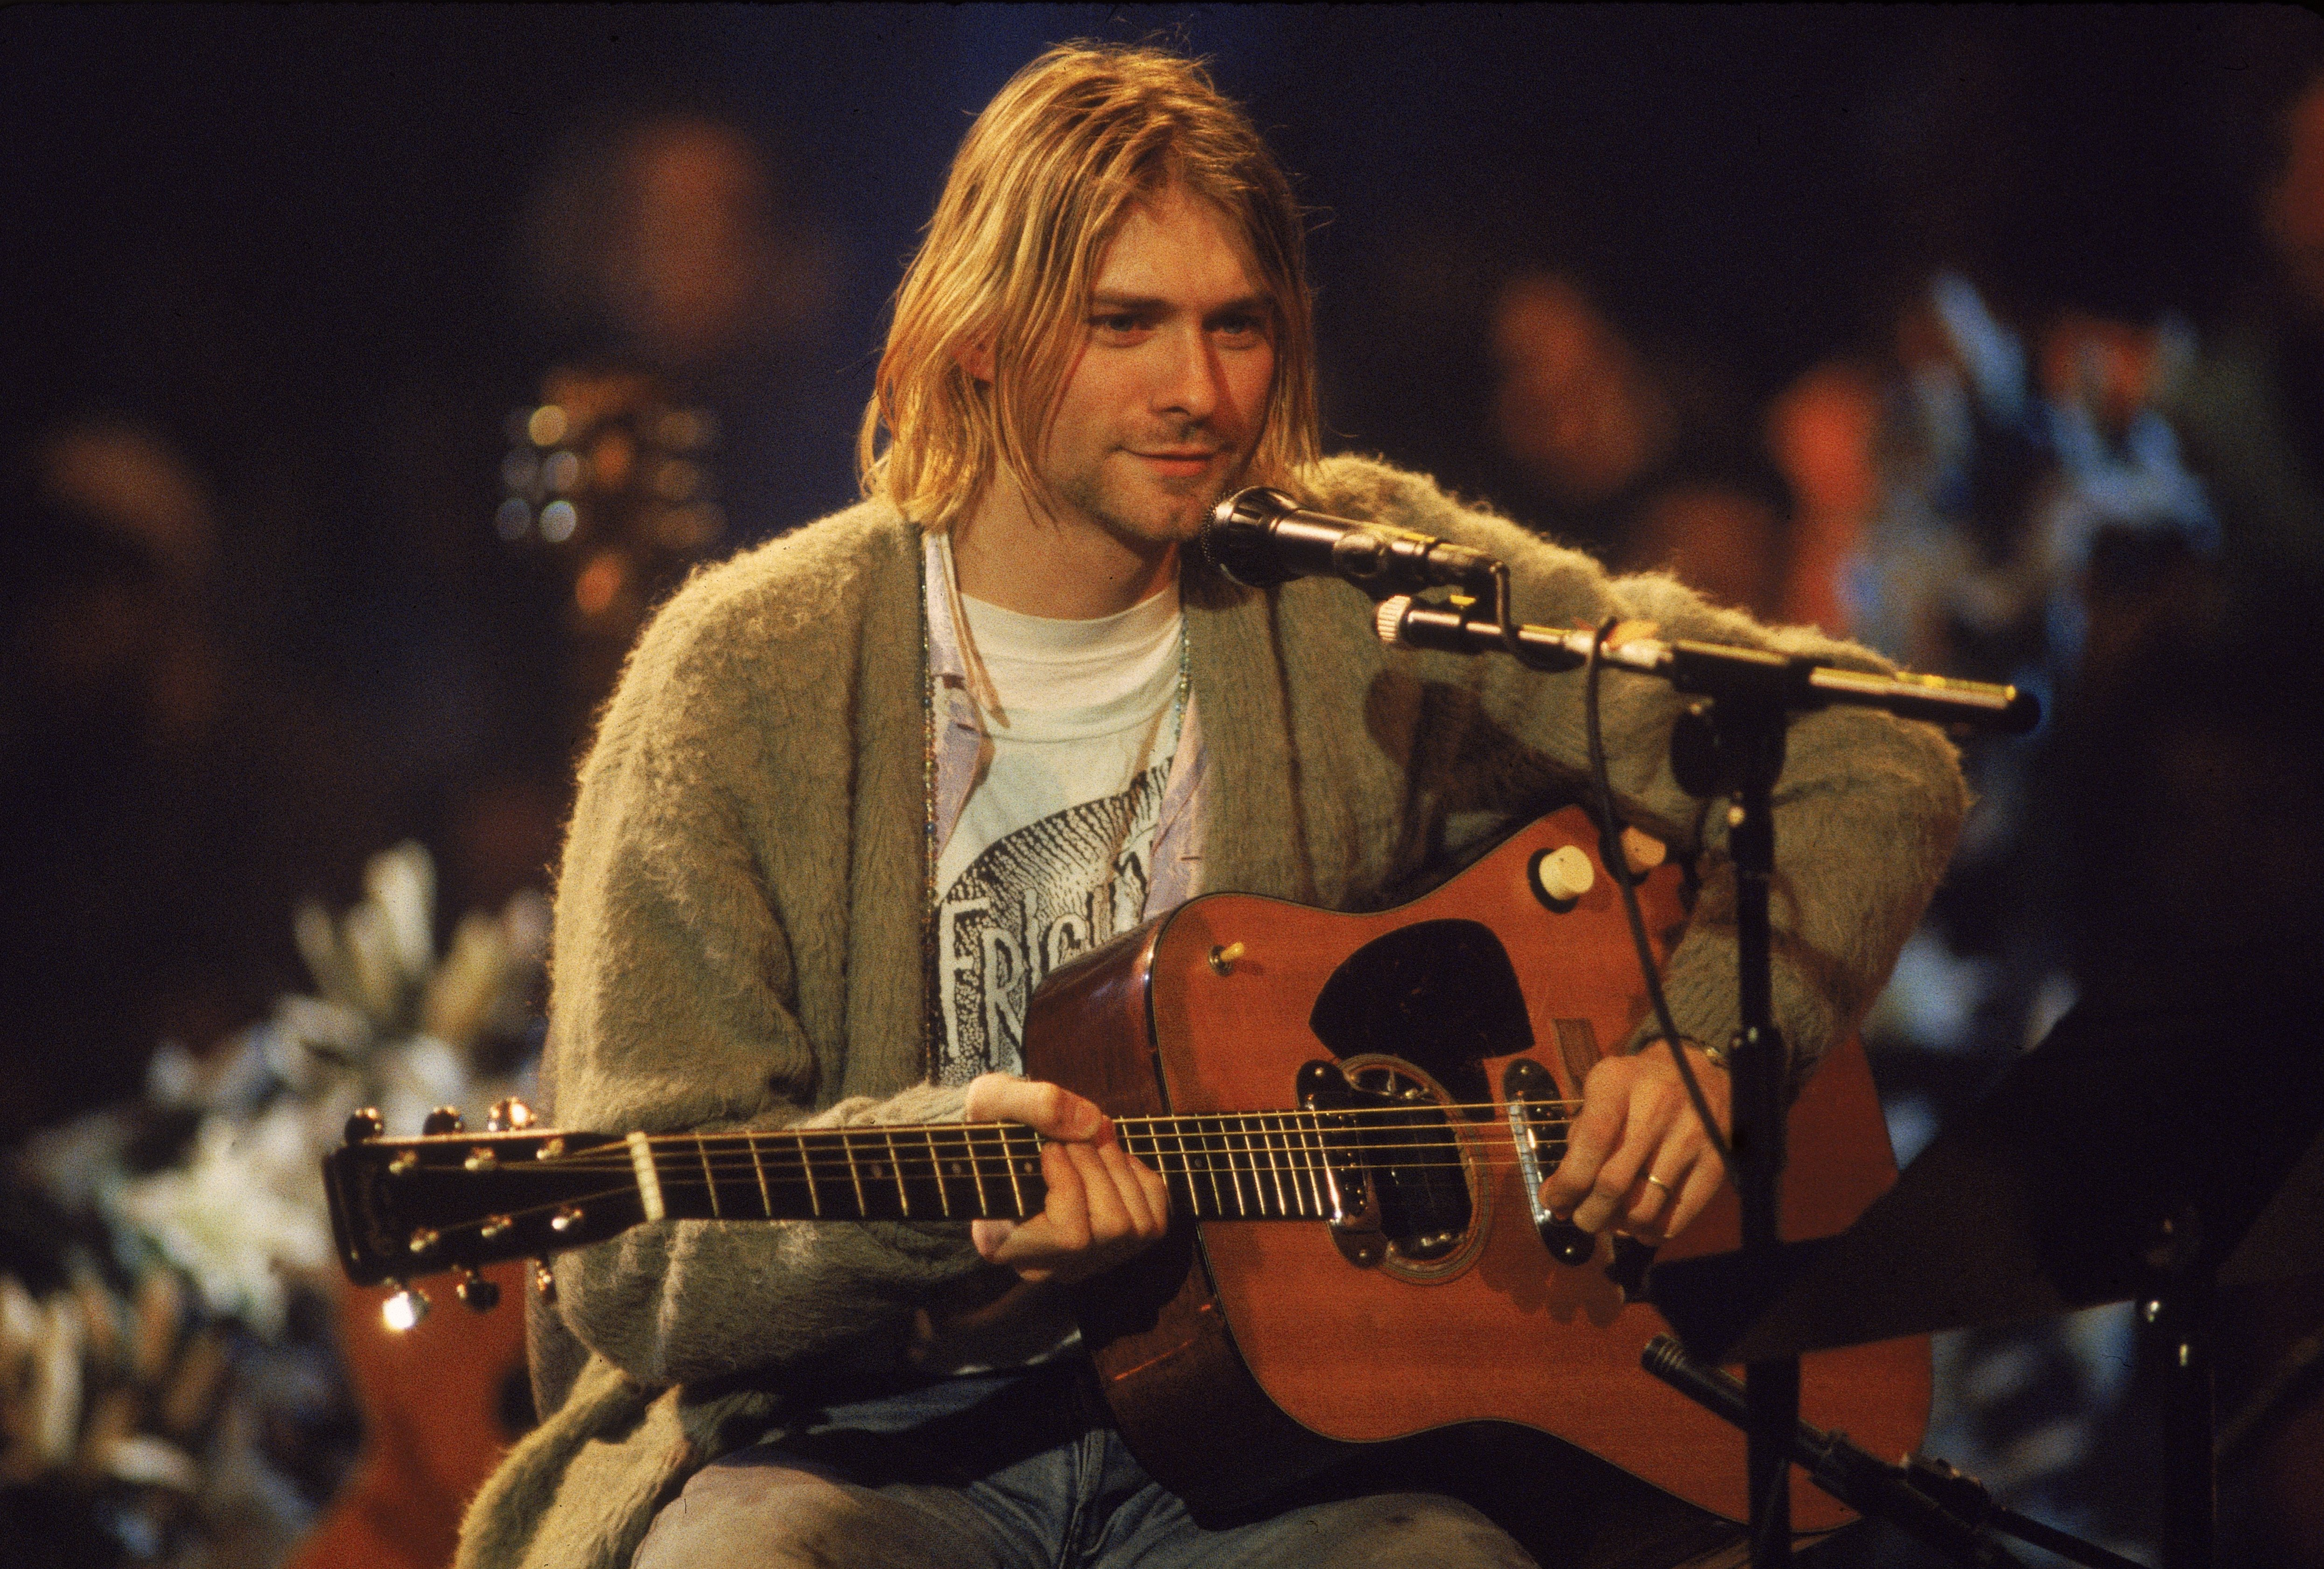 Kurt Cobain's famous sweater, still unwashed, and other rare rock memorabilia go up for auction